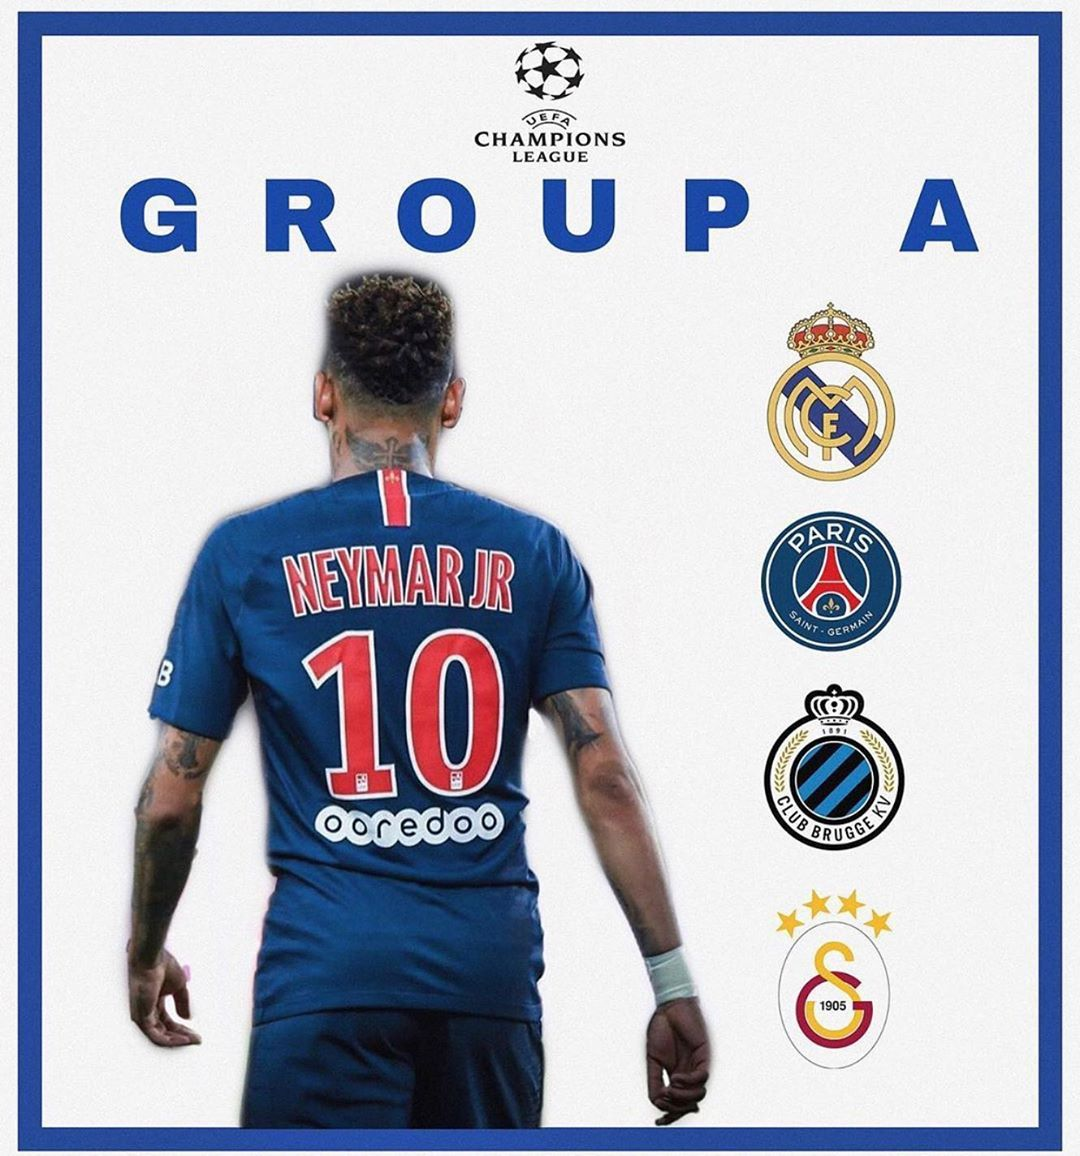 Now that Neymar is confirmed to stay at PSG what are your